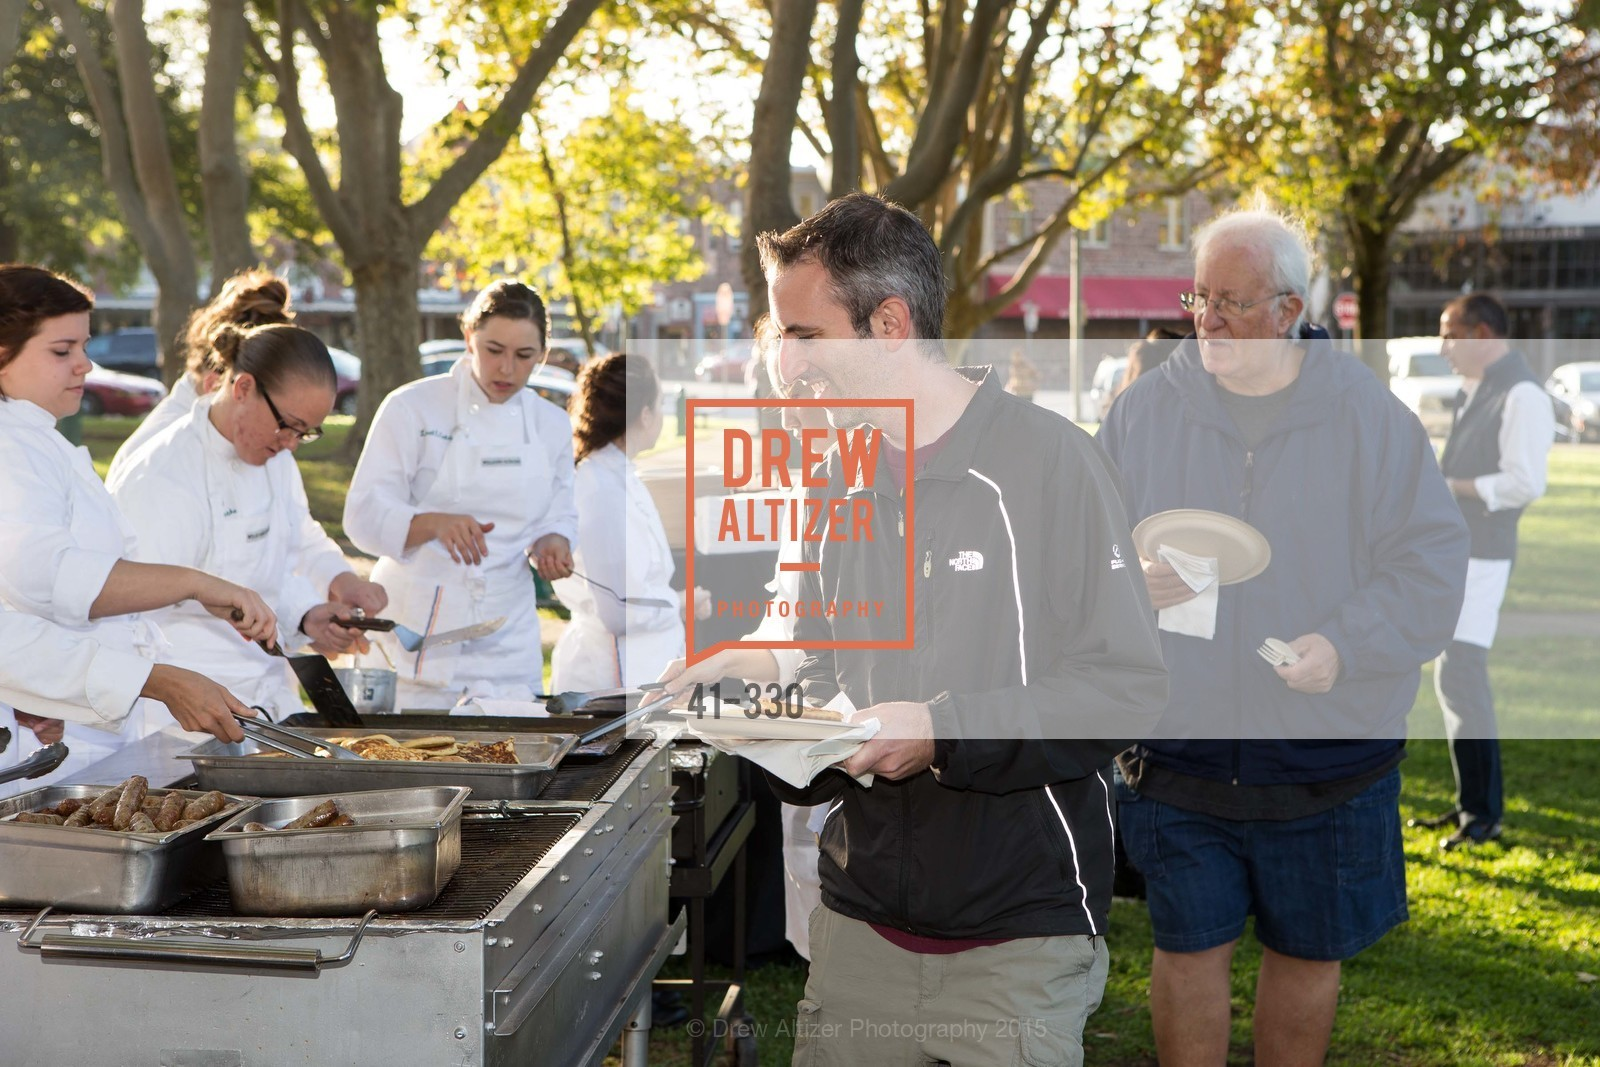 Atmosphere, Williams Sonoma Pancake Breakfast, October 3rd, 2015, Photo,Drew Altizer, Drew Altizer Photography, full-service event agency, private events, San Francisco photographer, photographer California